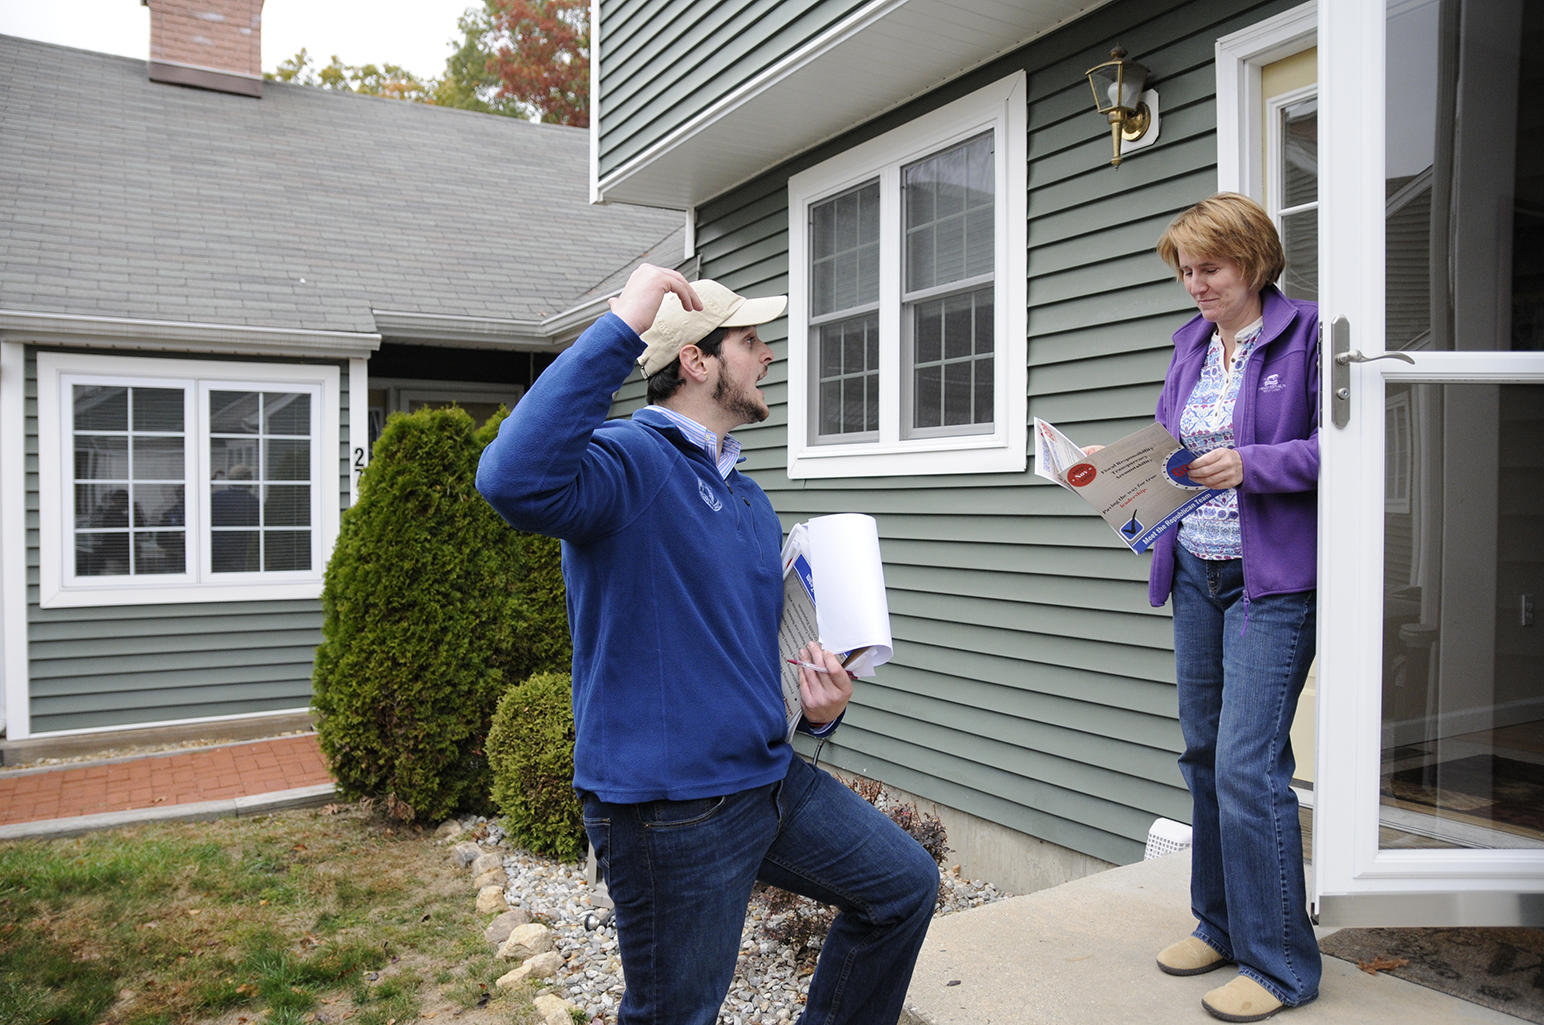 Sargent and other Republicans went door-to-door across Mansfield in order to get their message across to voters. Here Sargent talks with a potential voter in the neighborhood of Freedom Green. (Amar Batra/The Daily Campus)